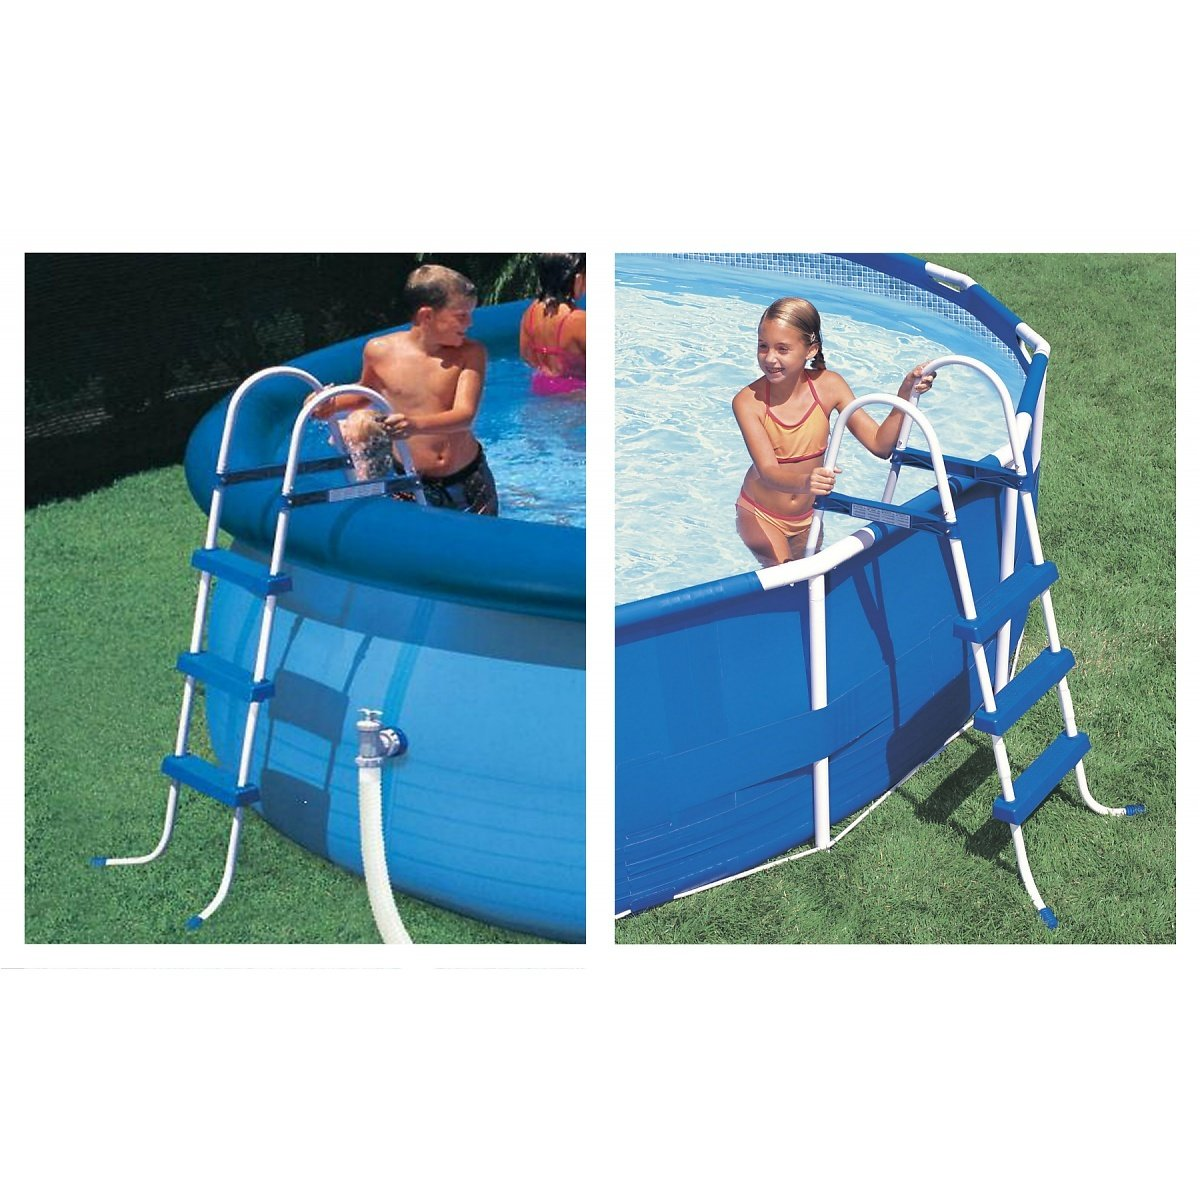 Intex 36-Inch Pool Ladder With Barrier 2